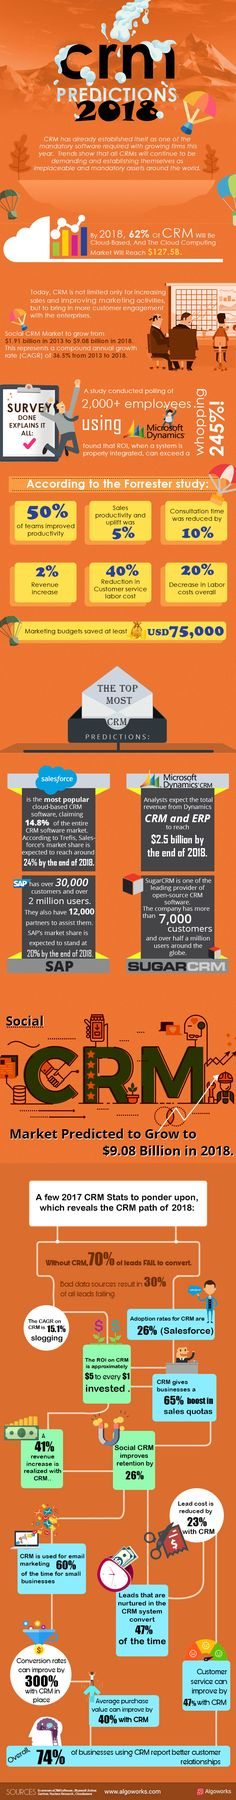 CRM Predictions 2018 Infographic - https://elearninginfographics.com/crm-predictions-2018-infographic/